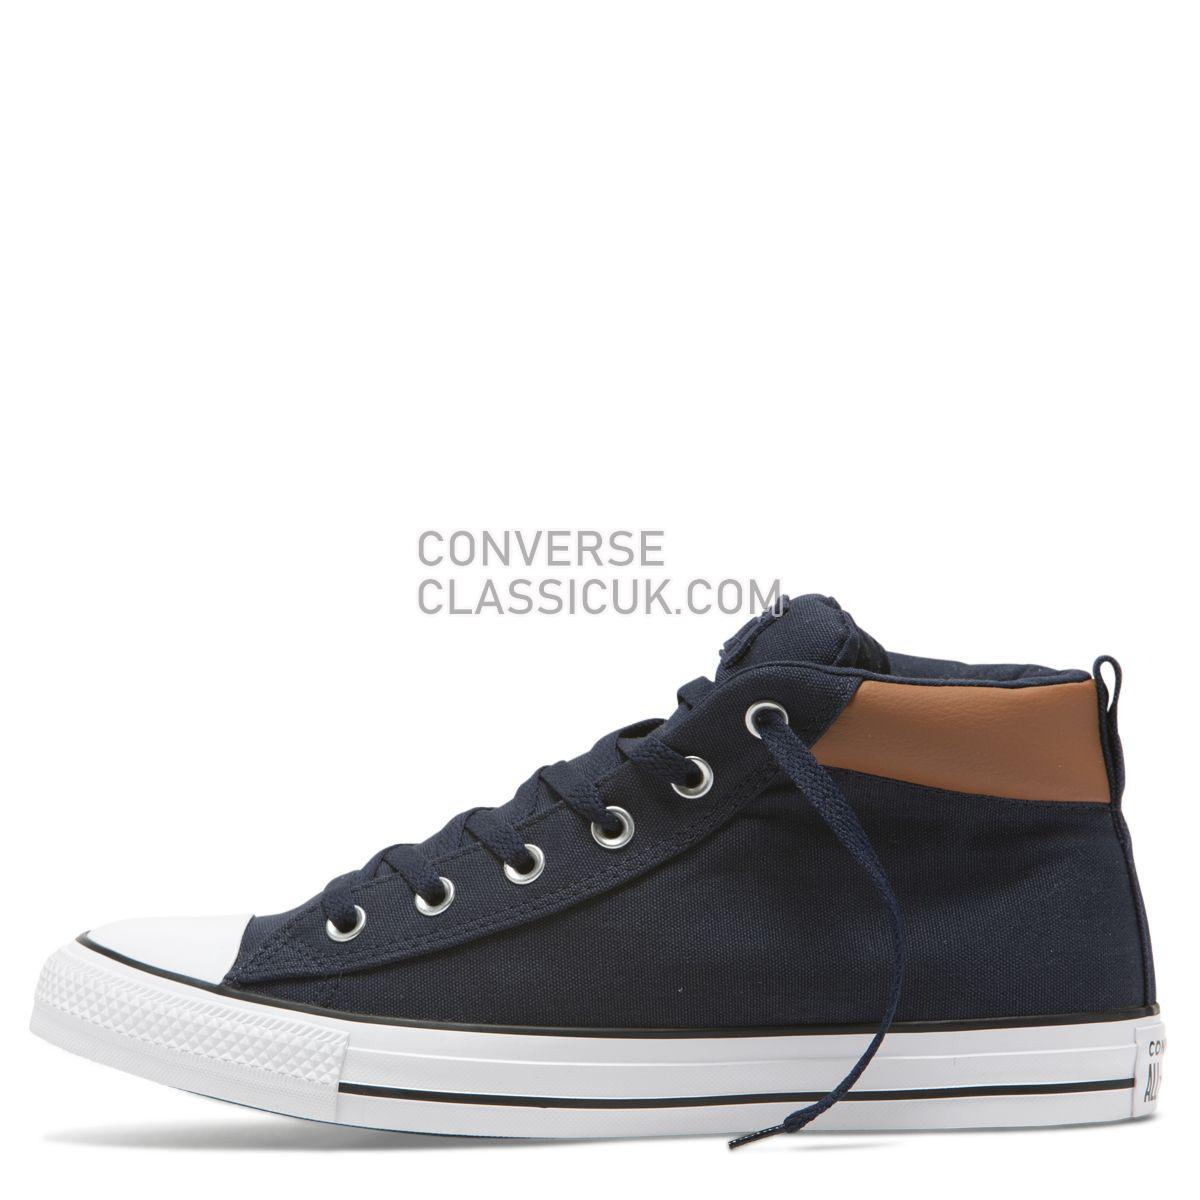 Converse Chuck Taylor All Star Street Space Explorer Mid Obsidian Mens 165390 Obsidian/Warm Tan/White Shoes